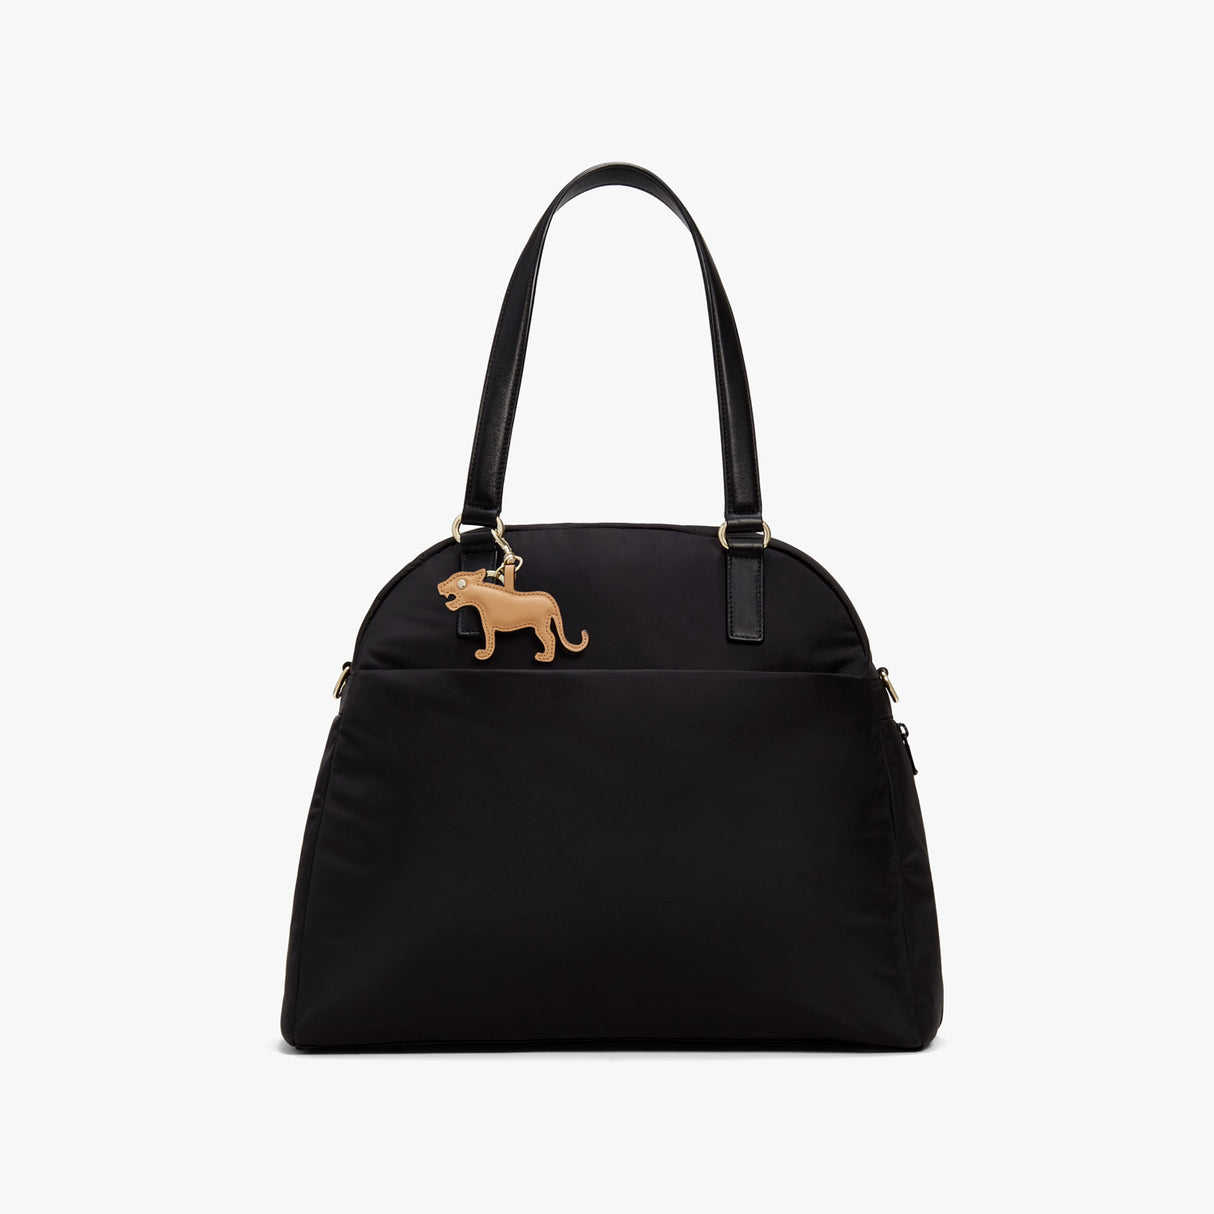 On Bag - Year of the Tiger Charm - Saffiano Leather - Sand - Small Accessory - Lo & Sons